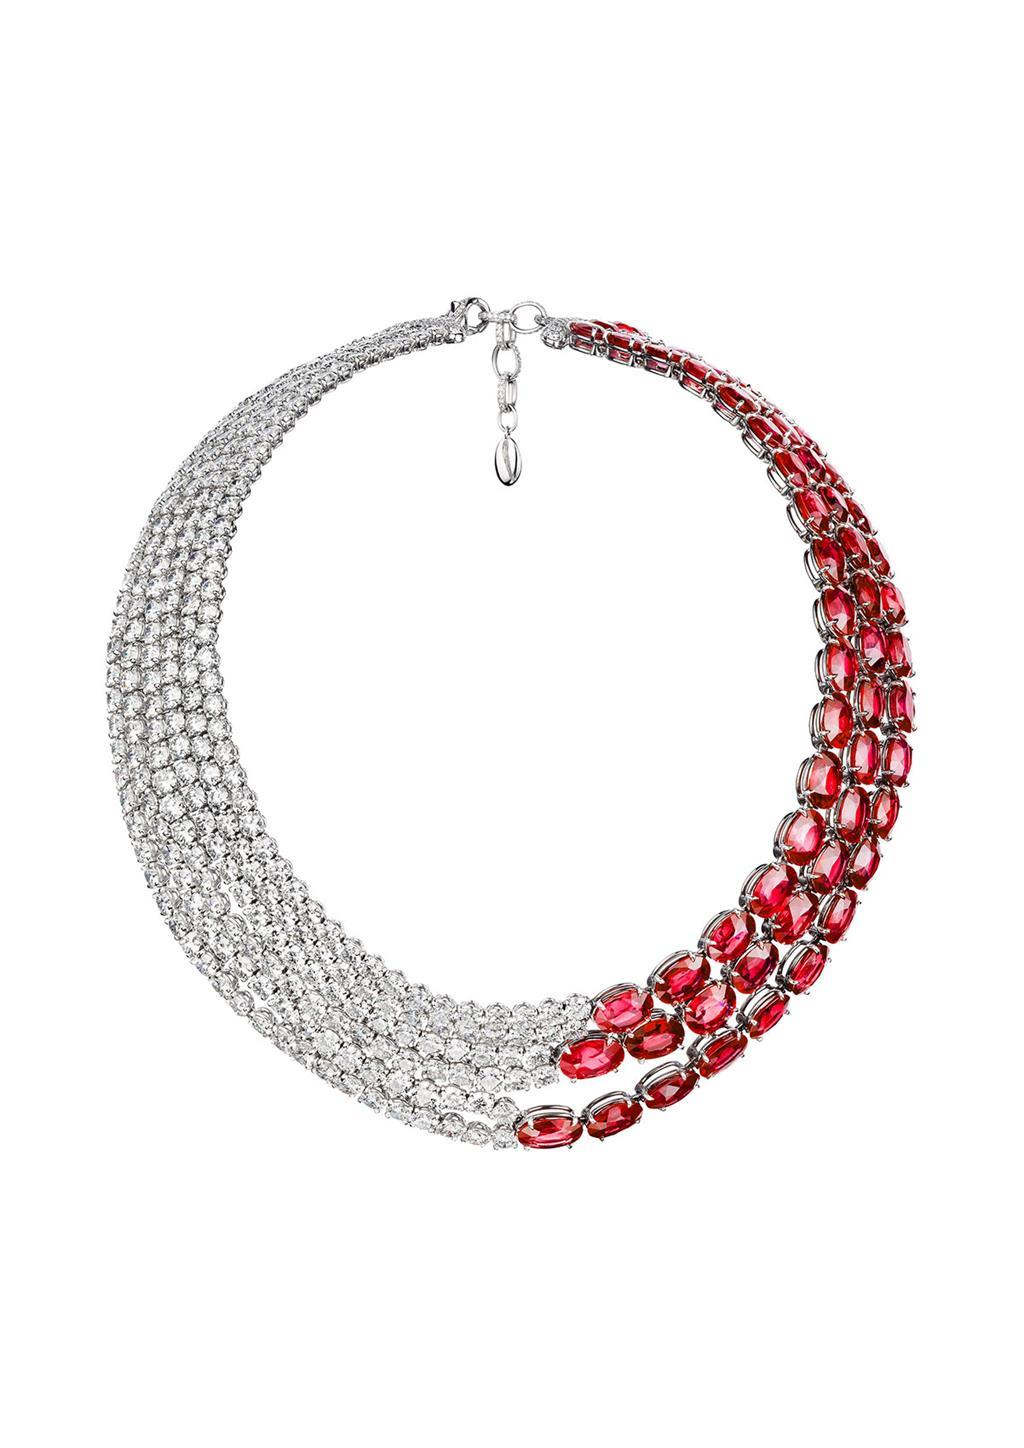 "Necklace ""L'Automne"" - White gold set with 60 oval cut rubies and 280 diamonds"